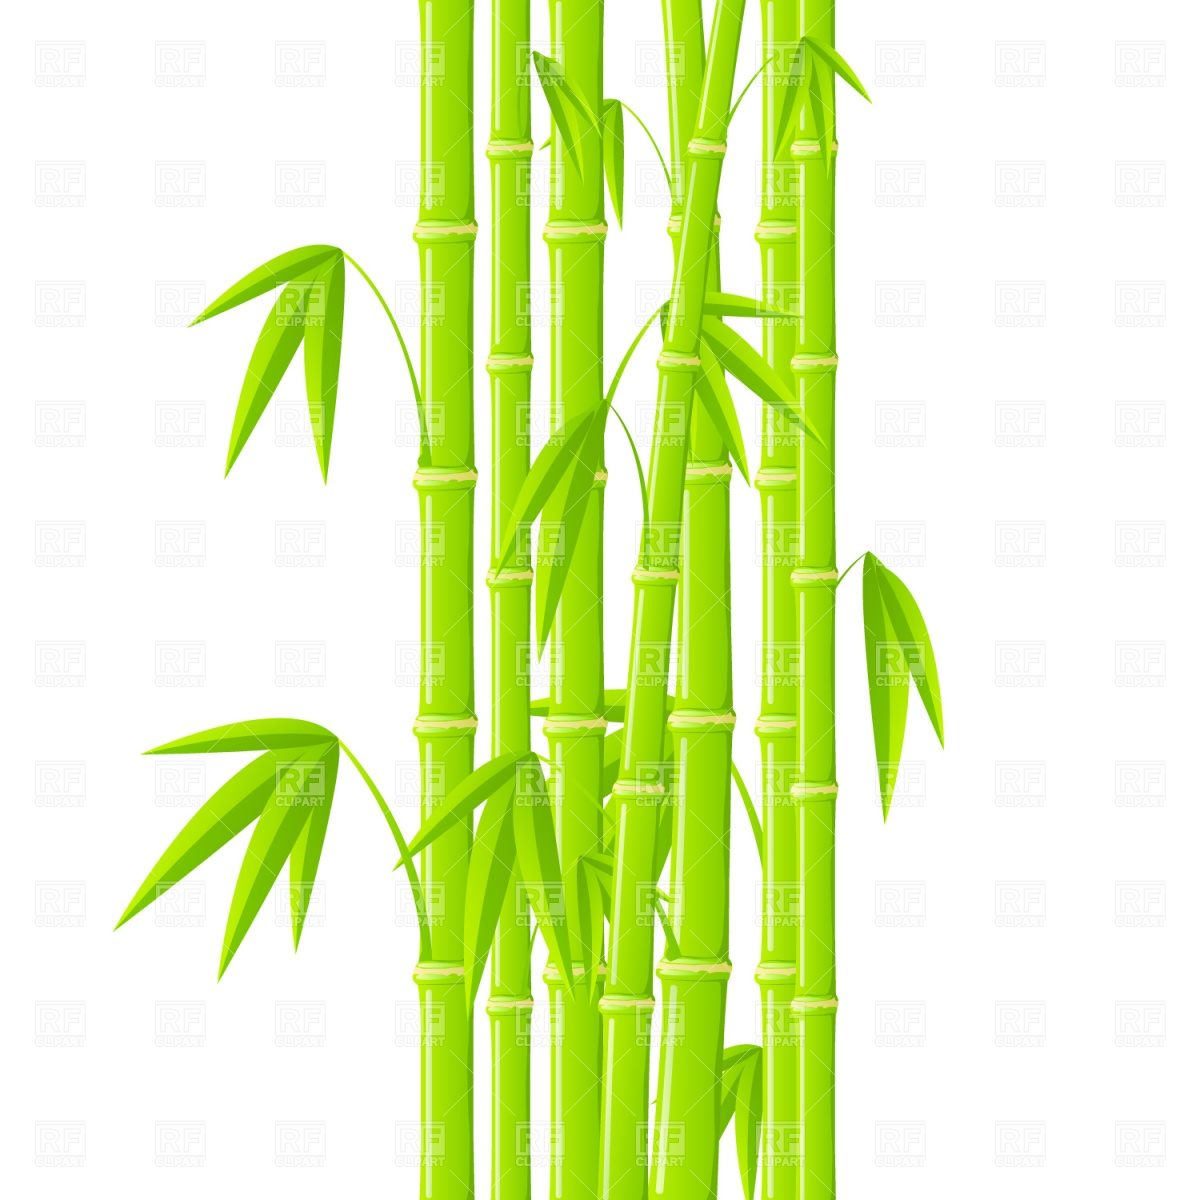 Green Bamboo Stems With Leaves Download -Green Bamboo Stems With Leaves Download Royalty Free Vector Clipart-6